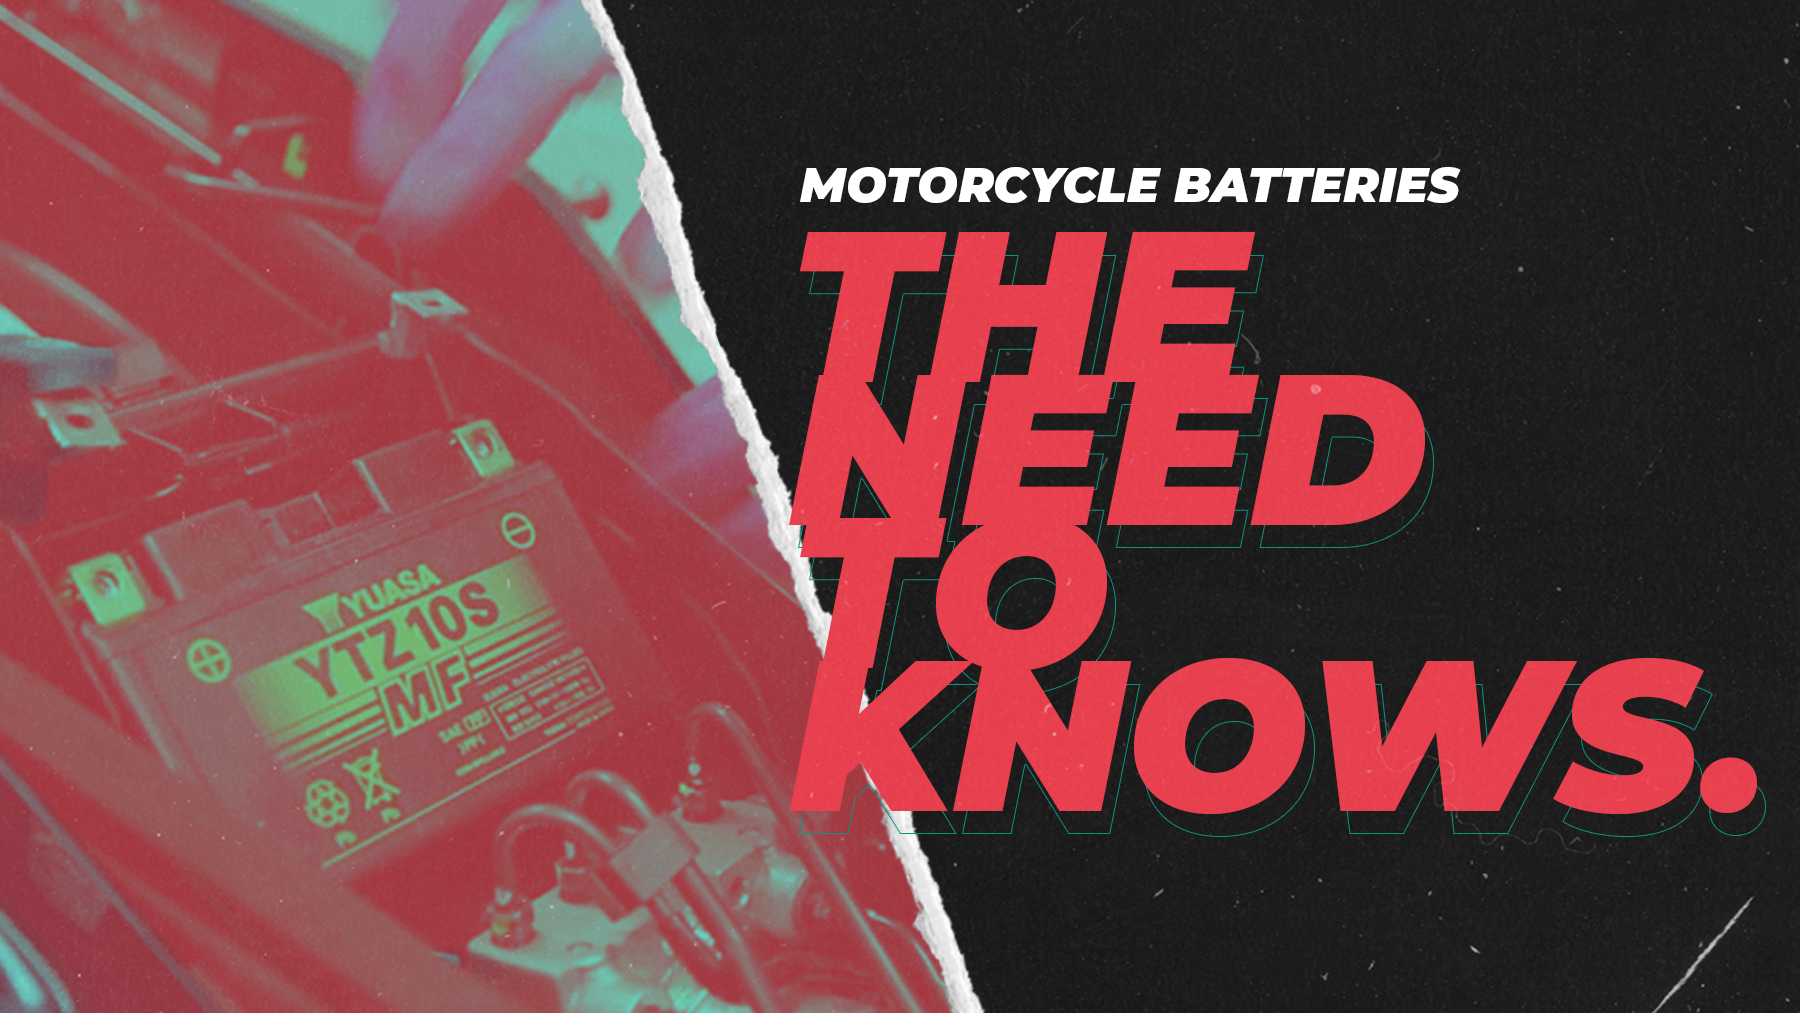 Motorcycle Batteries: The Need-To-Knows